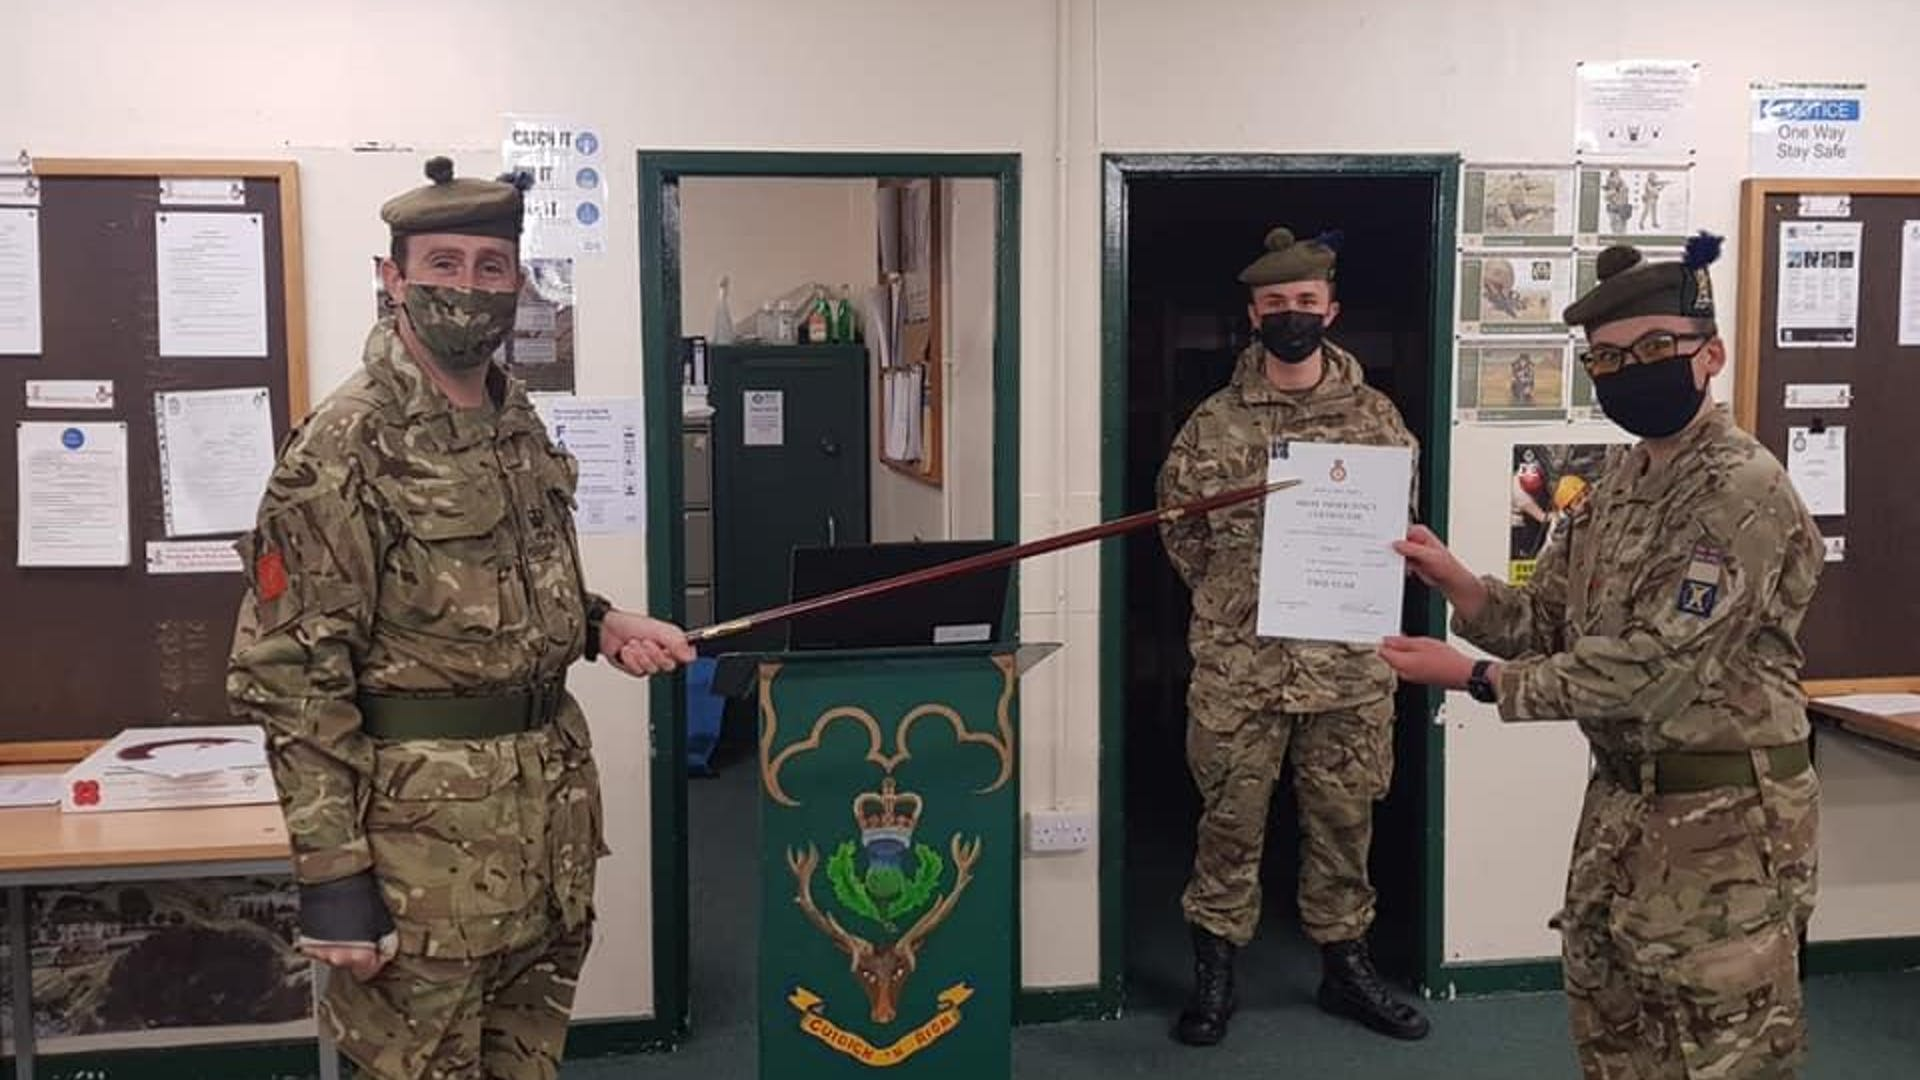 Cpl Nathanael Mccully who was presented with his 2 Star Certificate by Detachment Commander CSMI Mac Iver